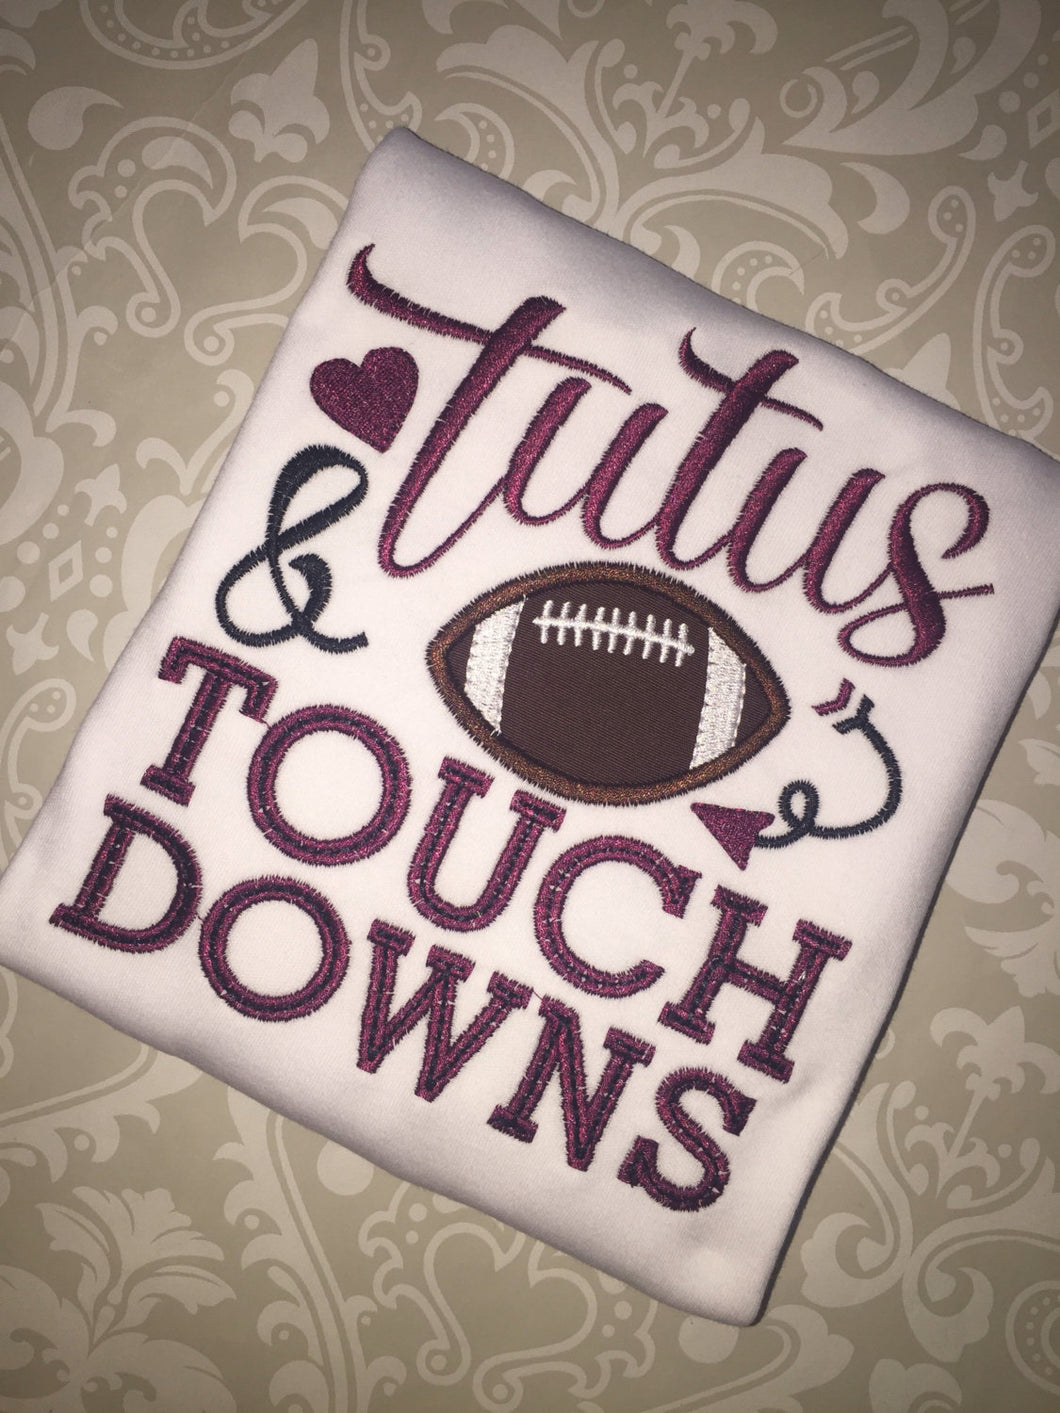 Tutus and touchdowns applique tee